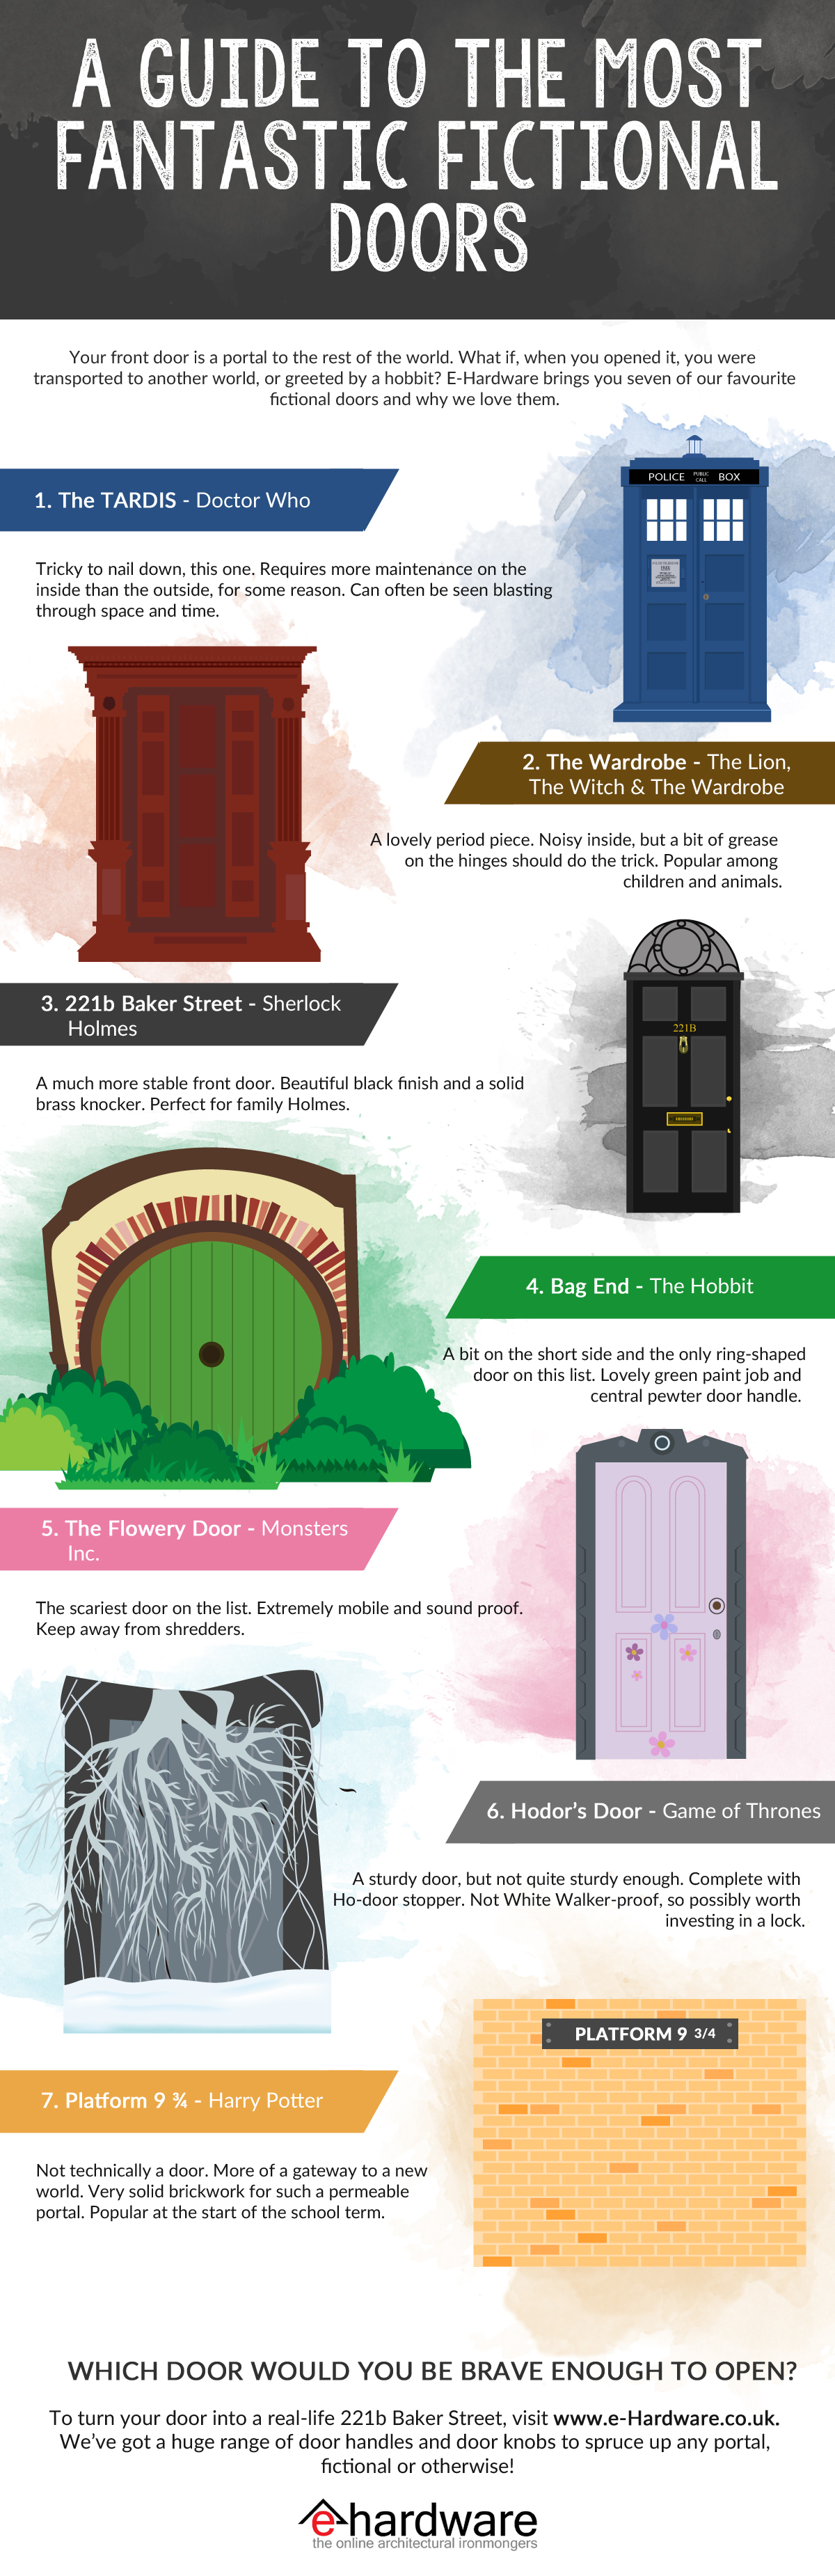 A Guide to the Most Fantastic Fictional Doors - e-Hardware